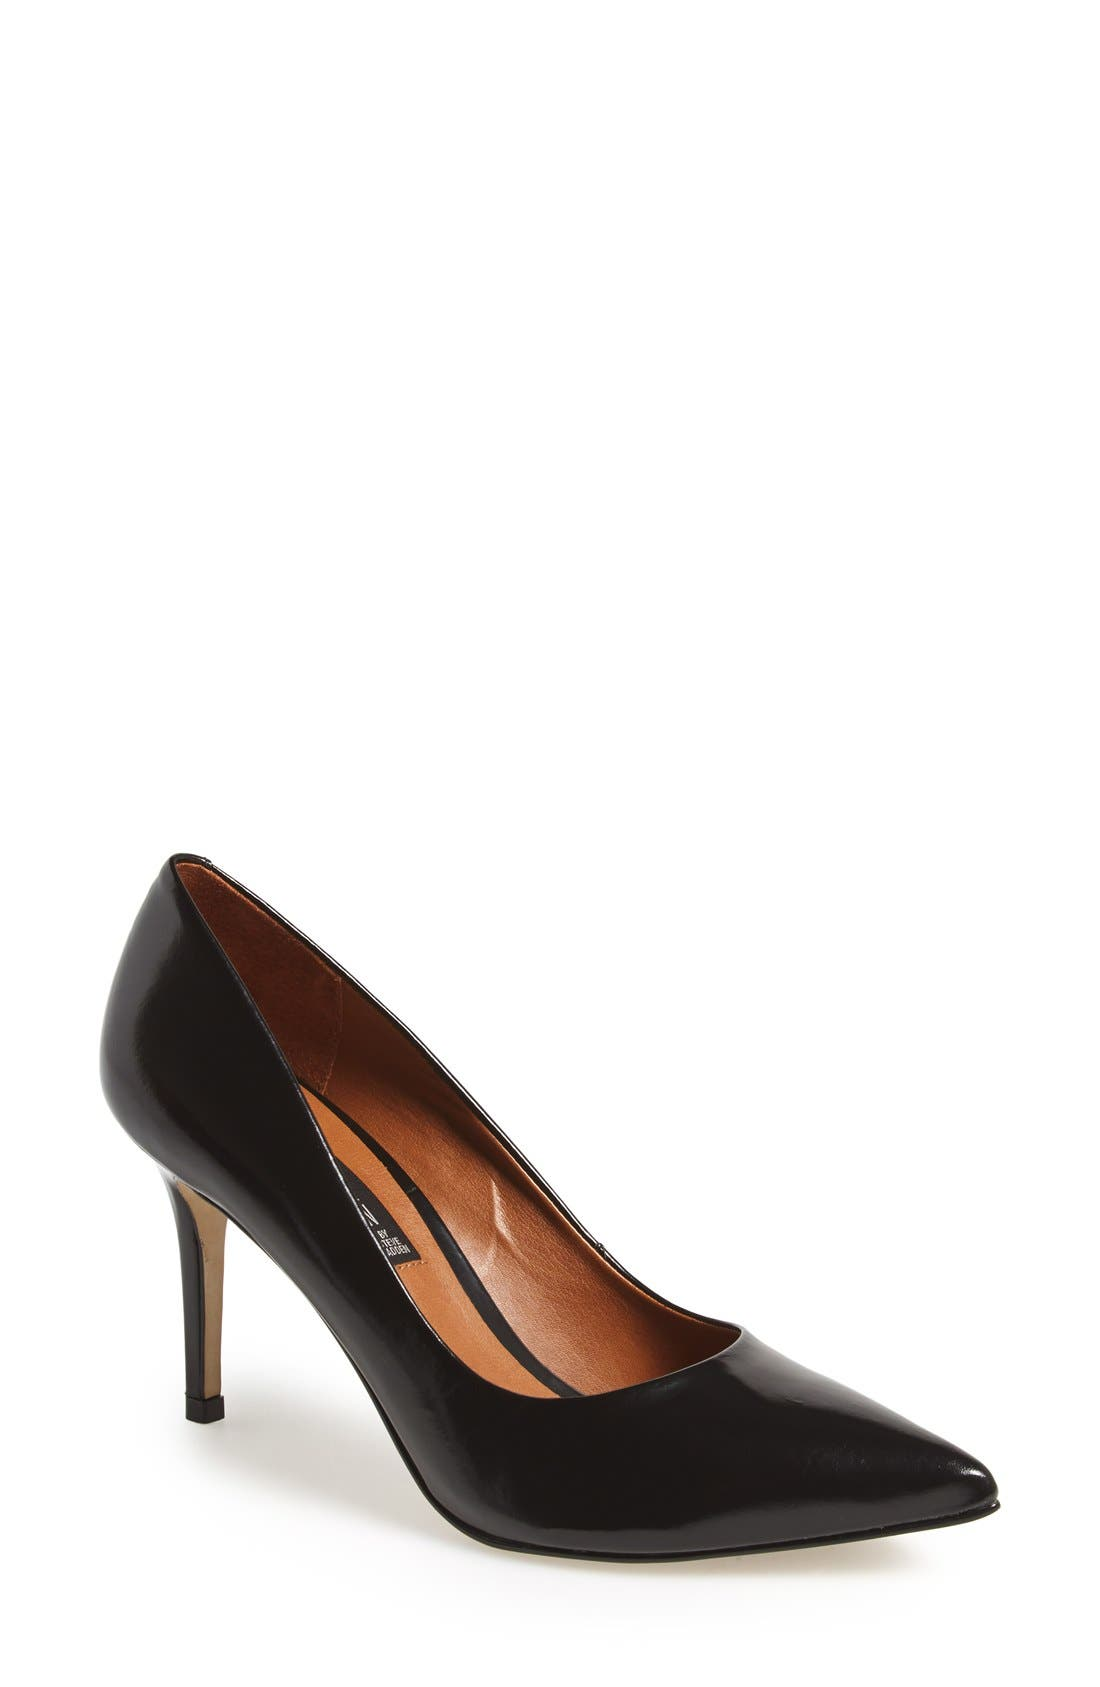 STEVEN BY STEVE MADDEN 'Shiela' Pointy Toe Pump, Main, color, 001